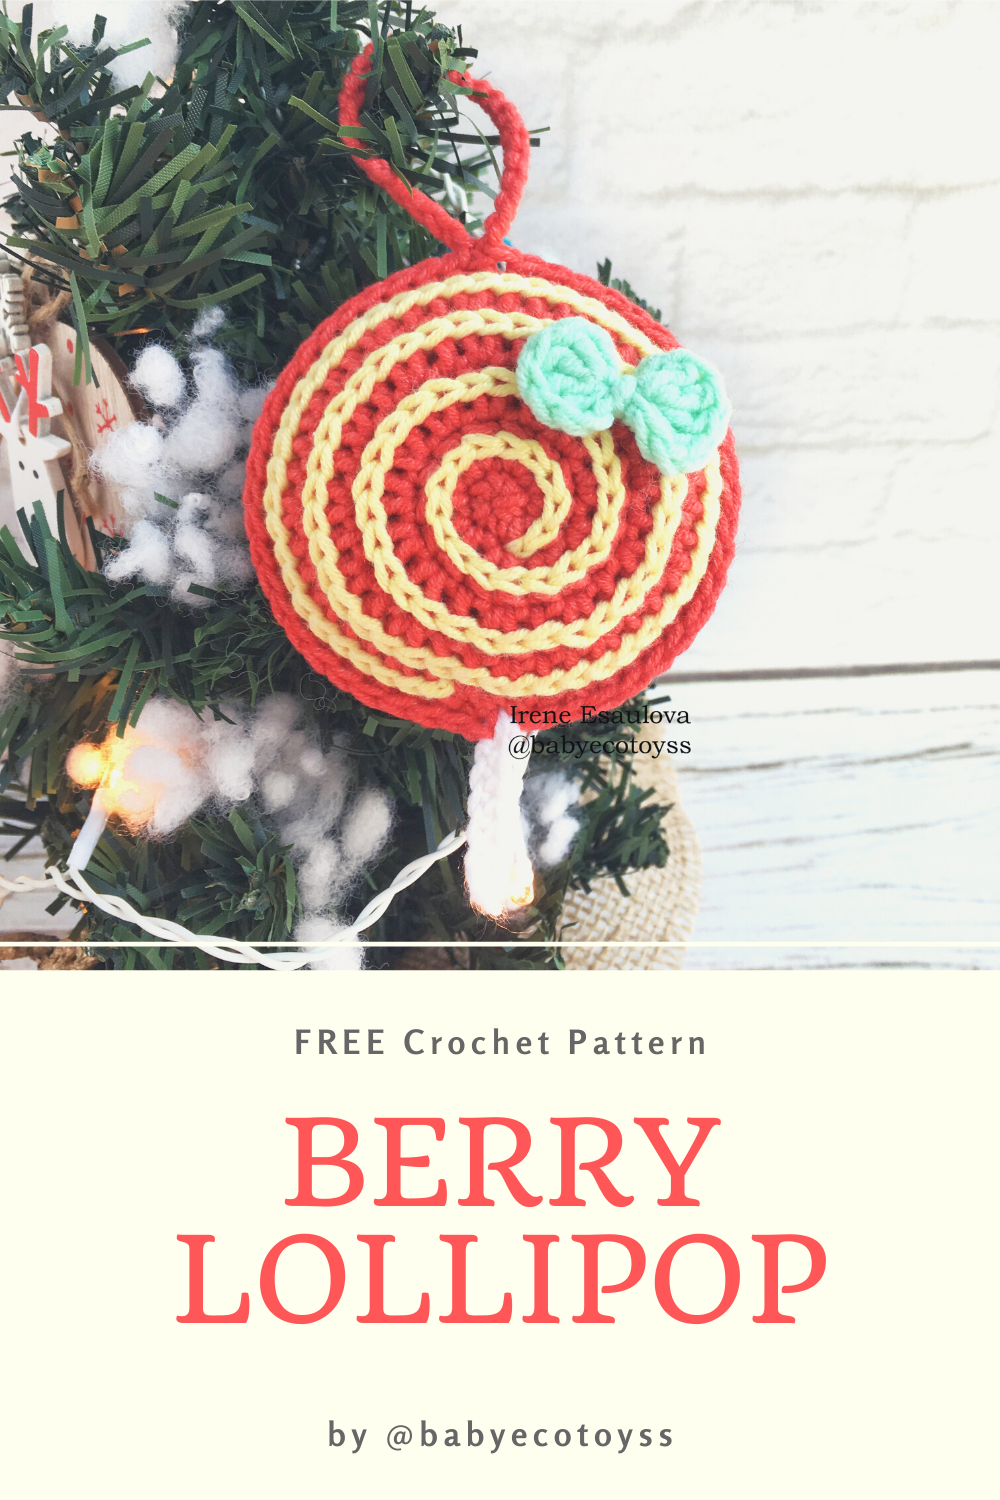 30+ Free Crochet Angel Patterns | AllFreeCrochet.com | 1500x1000